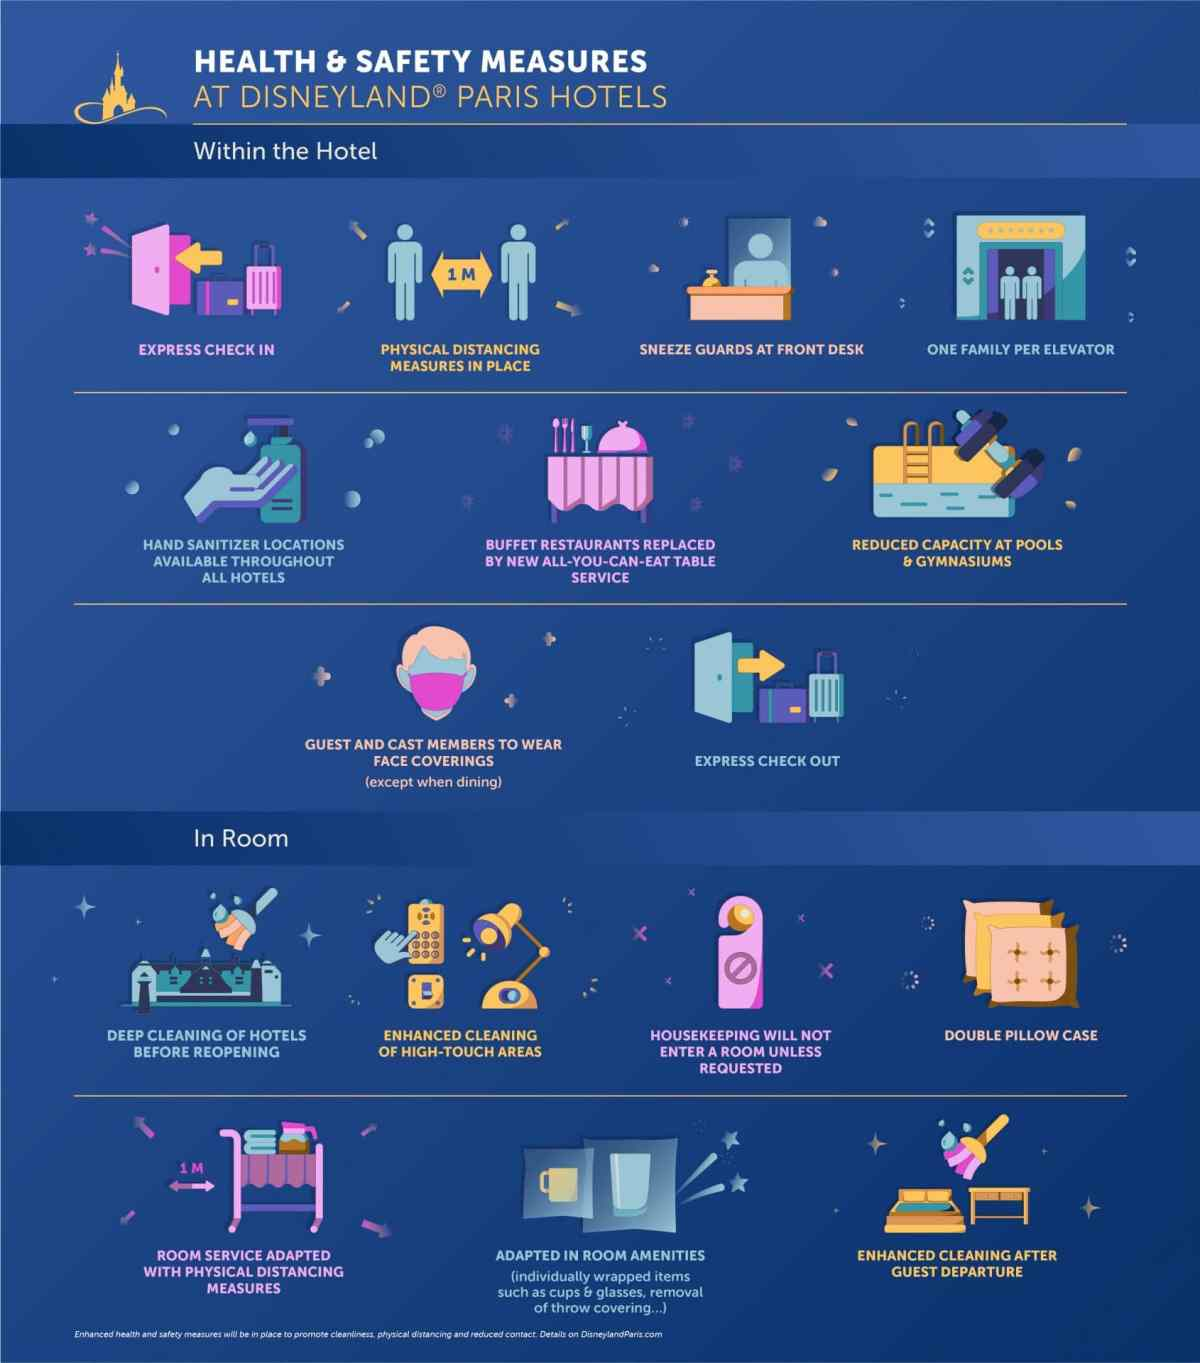 Disneyland Paris Infographic - Health & Safety Measures at Disneyland Paris Hotels